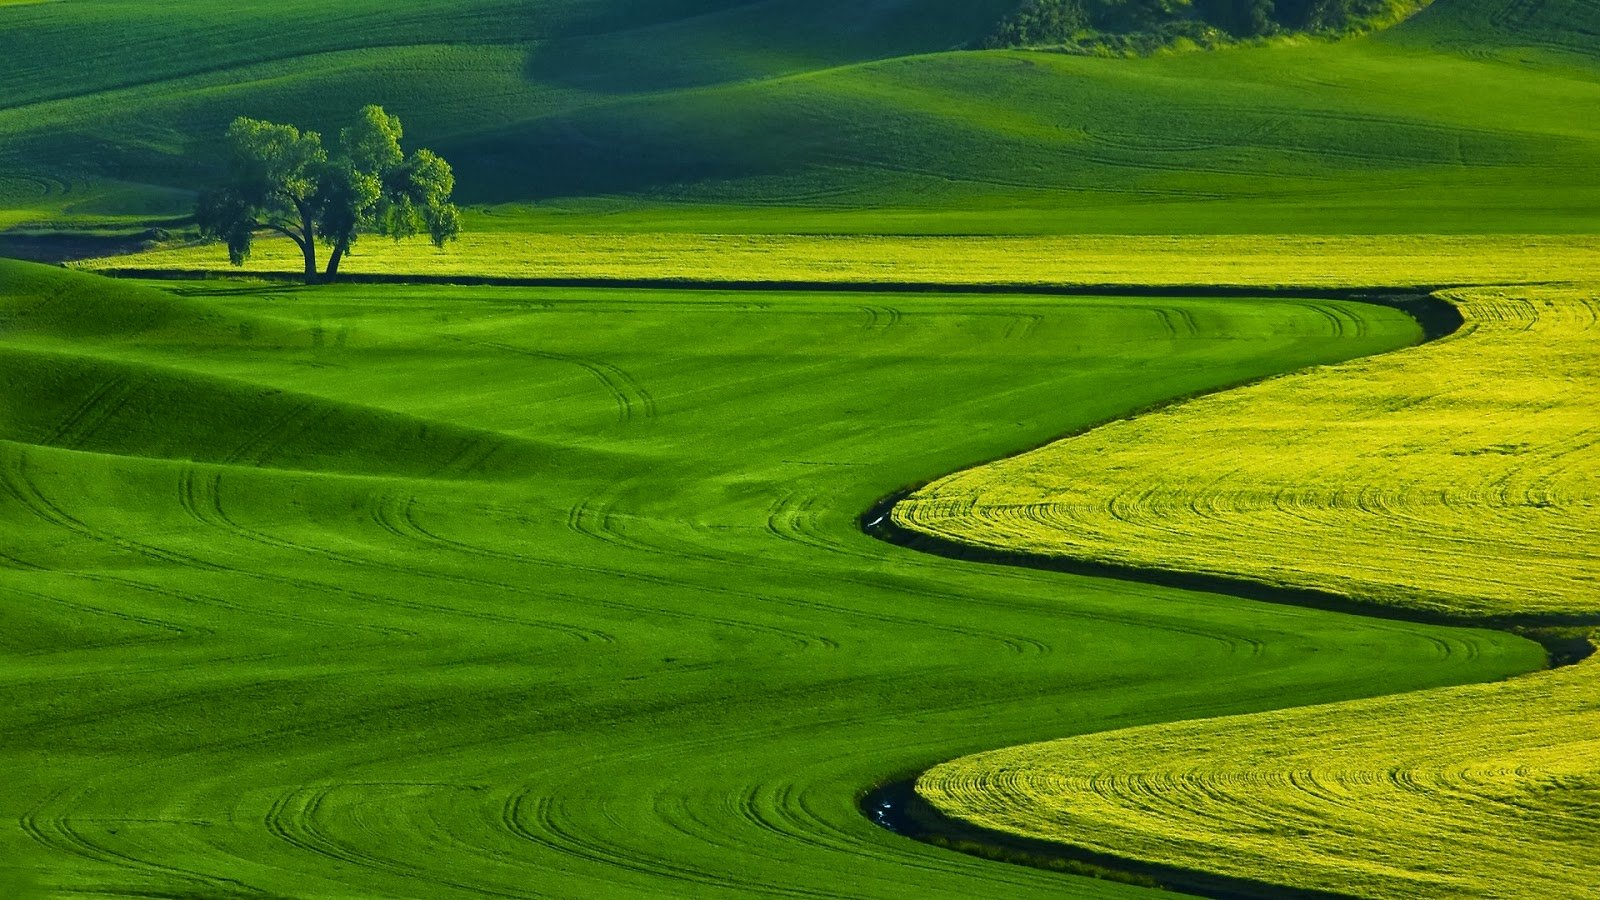 HD Nature Wallpapers Download For Laptop PC Desktop Background 1600x900